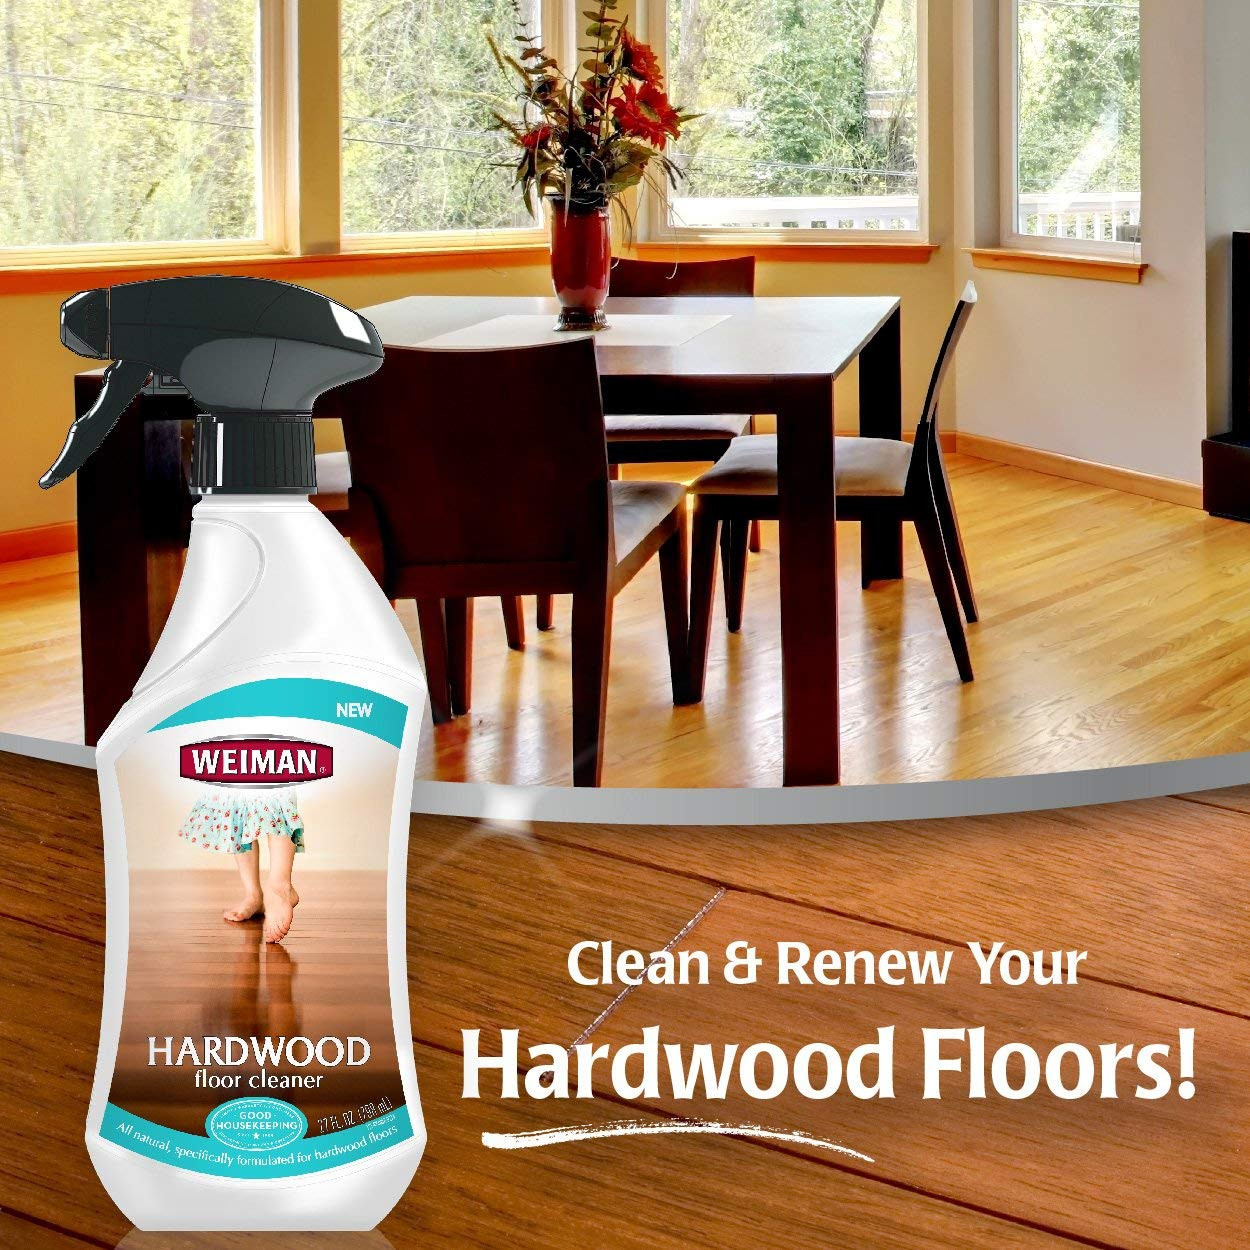 engineered hardwood floors charlotte nc of amazon com weiman hardwood floor cleaner surface safe no harsh regarding amazon com weiman hardwood floor cleaner surface safe no harsh scent safe for use around kids and pets residue free 27 oz trigger home kitchen